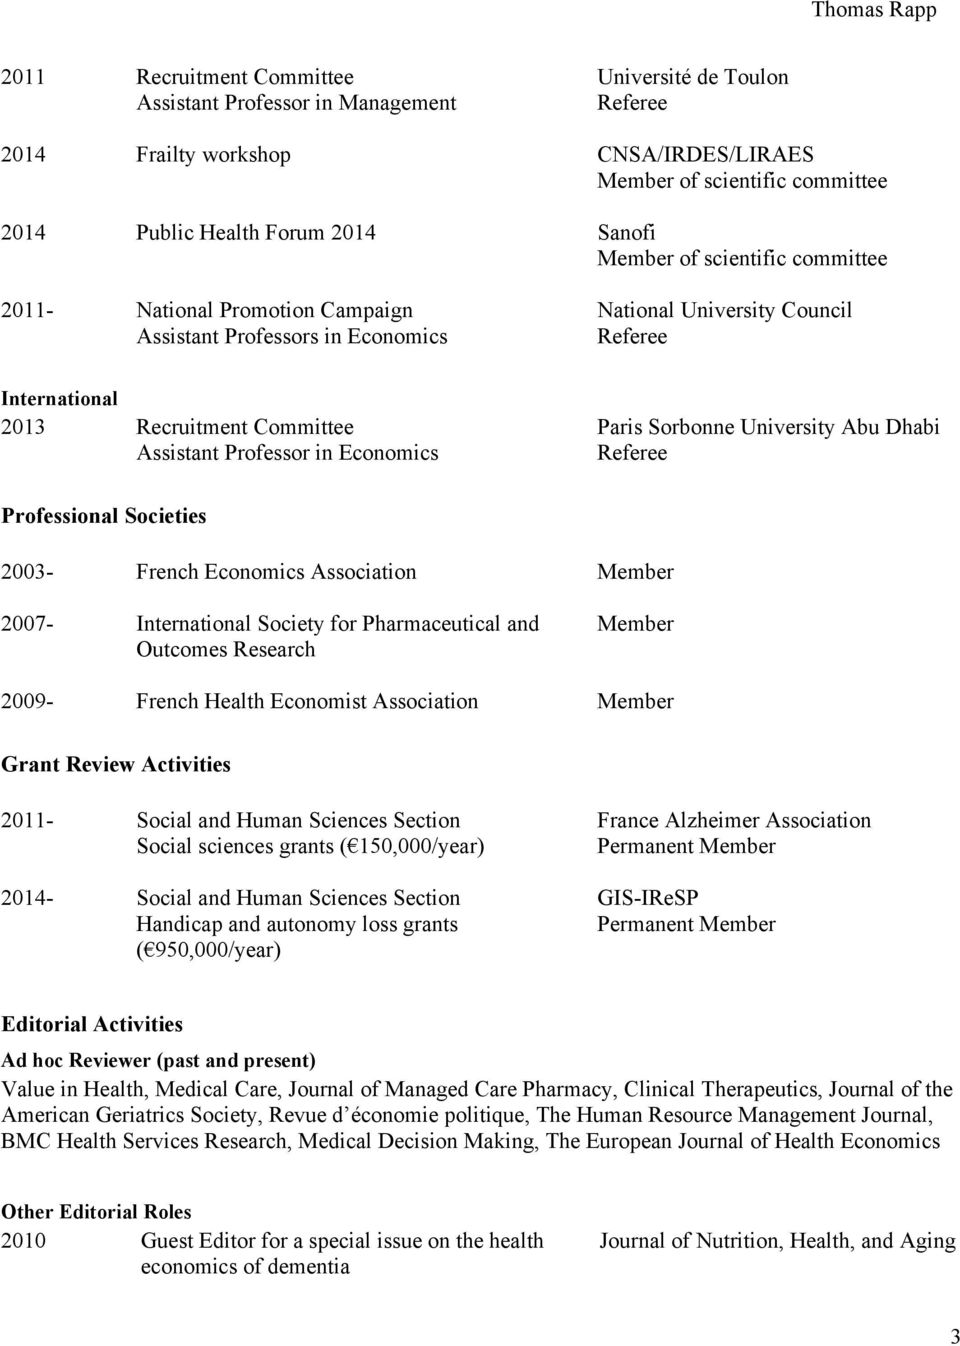 University Abu Dhabi Assistant Professor in Economics Referee Professional Societies 2003- French Economics Association Member 2007- International Society for Pharmaceutical and Outcomes Research